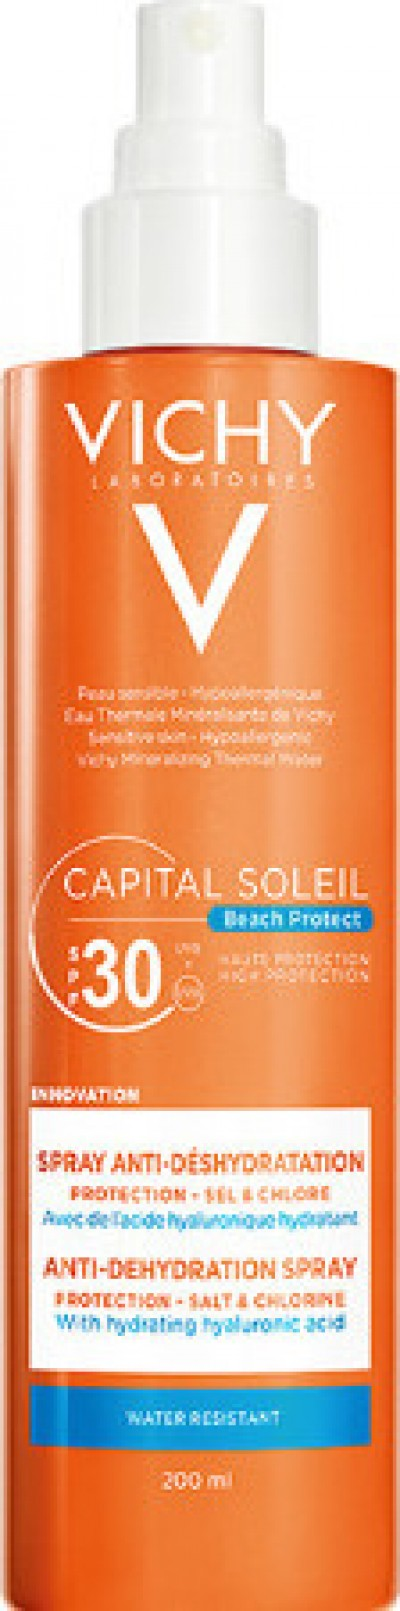 Vichy Capital Soleil Beach Protect Anti-dehydration SPF30 Αντιηλιακό Spray Με Υαλουρονικό 200ml